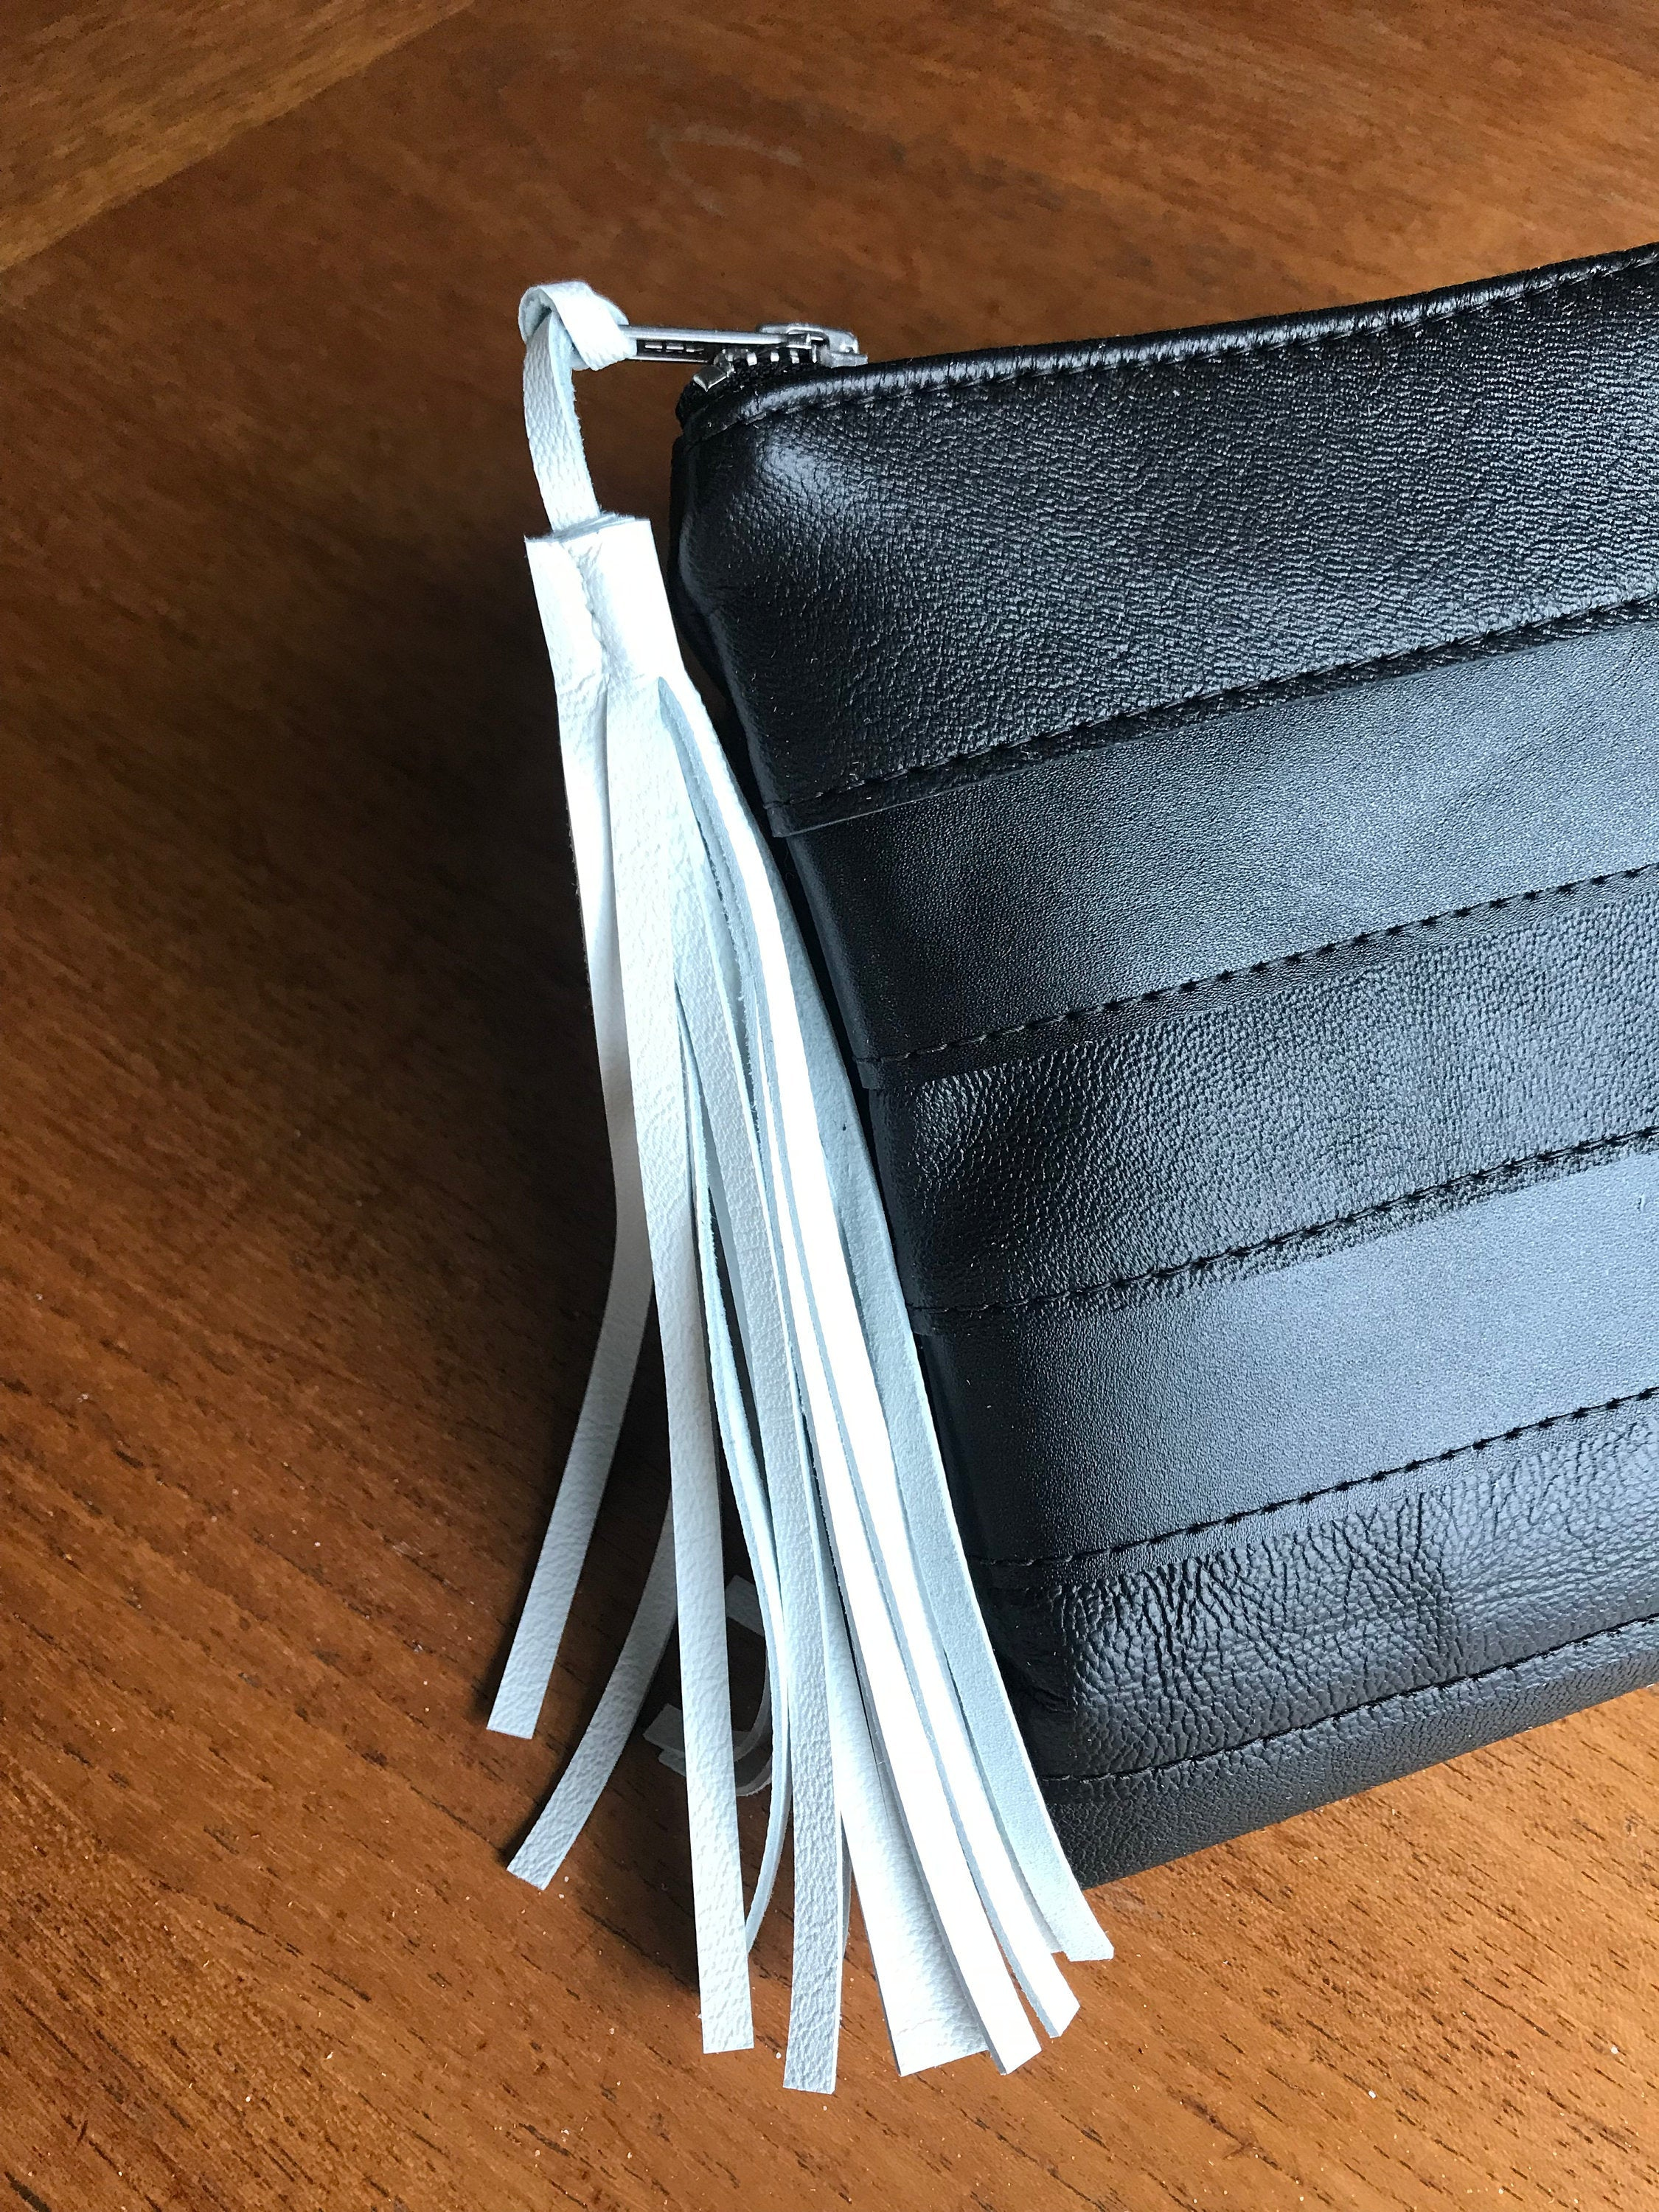 White leather tassel shown on black leather clutch